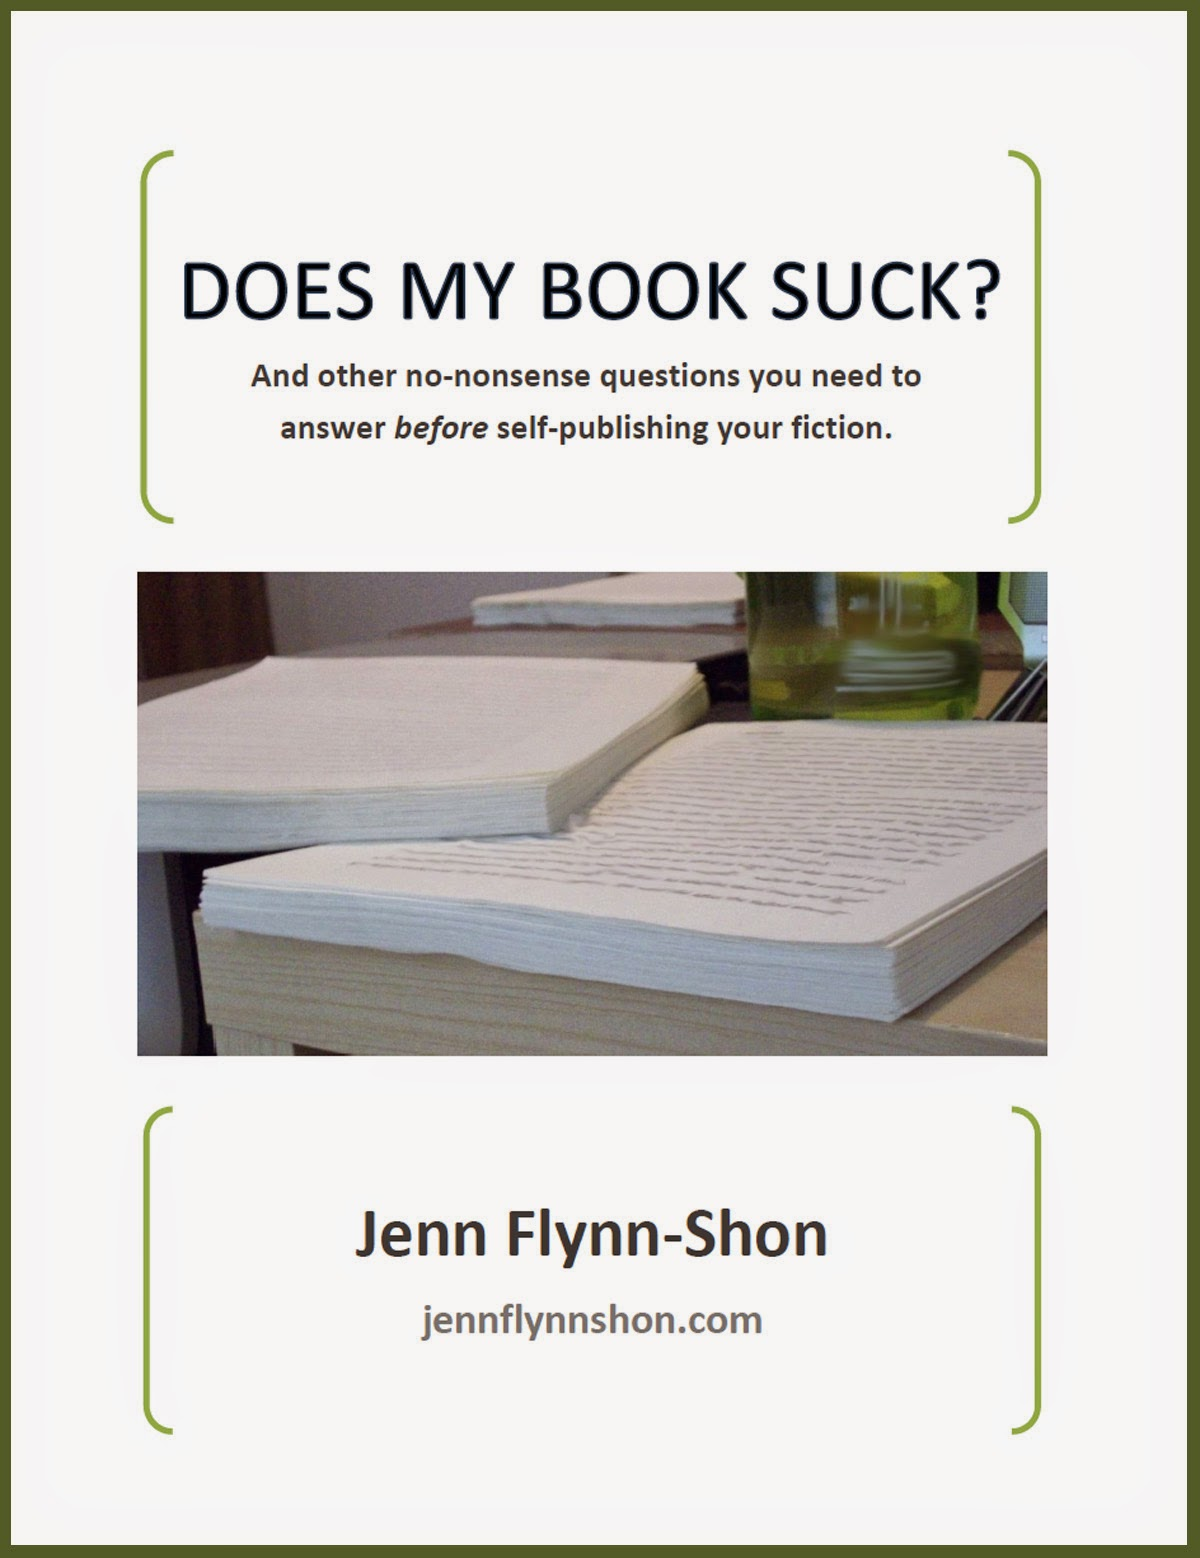 Does My Book Suck?